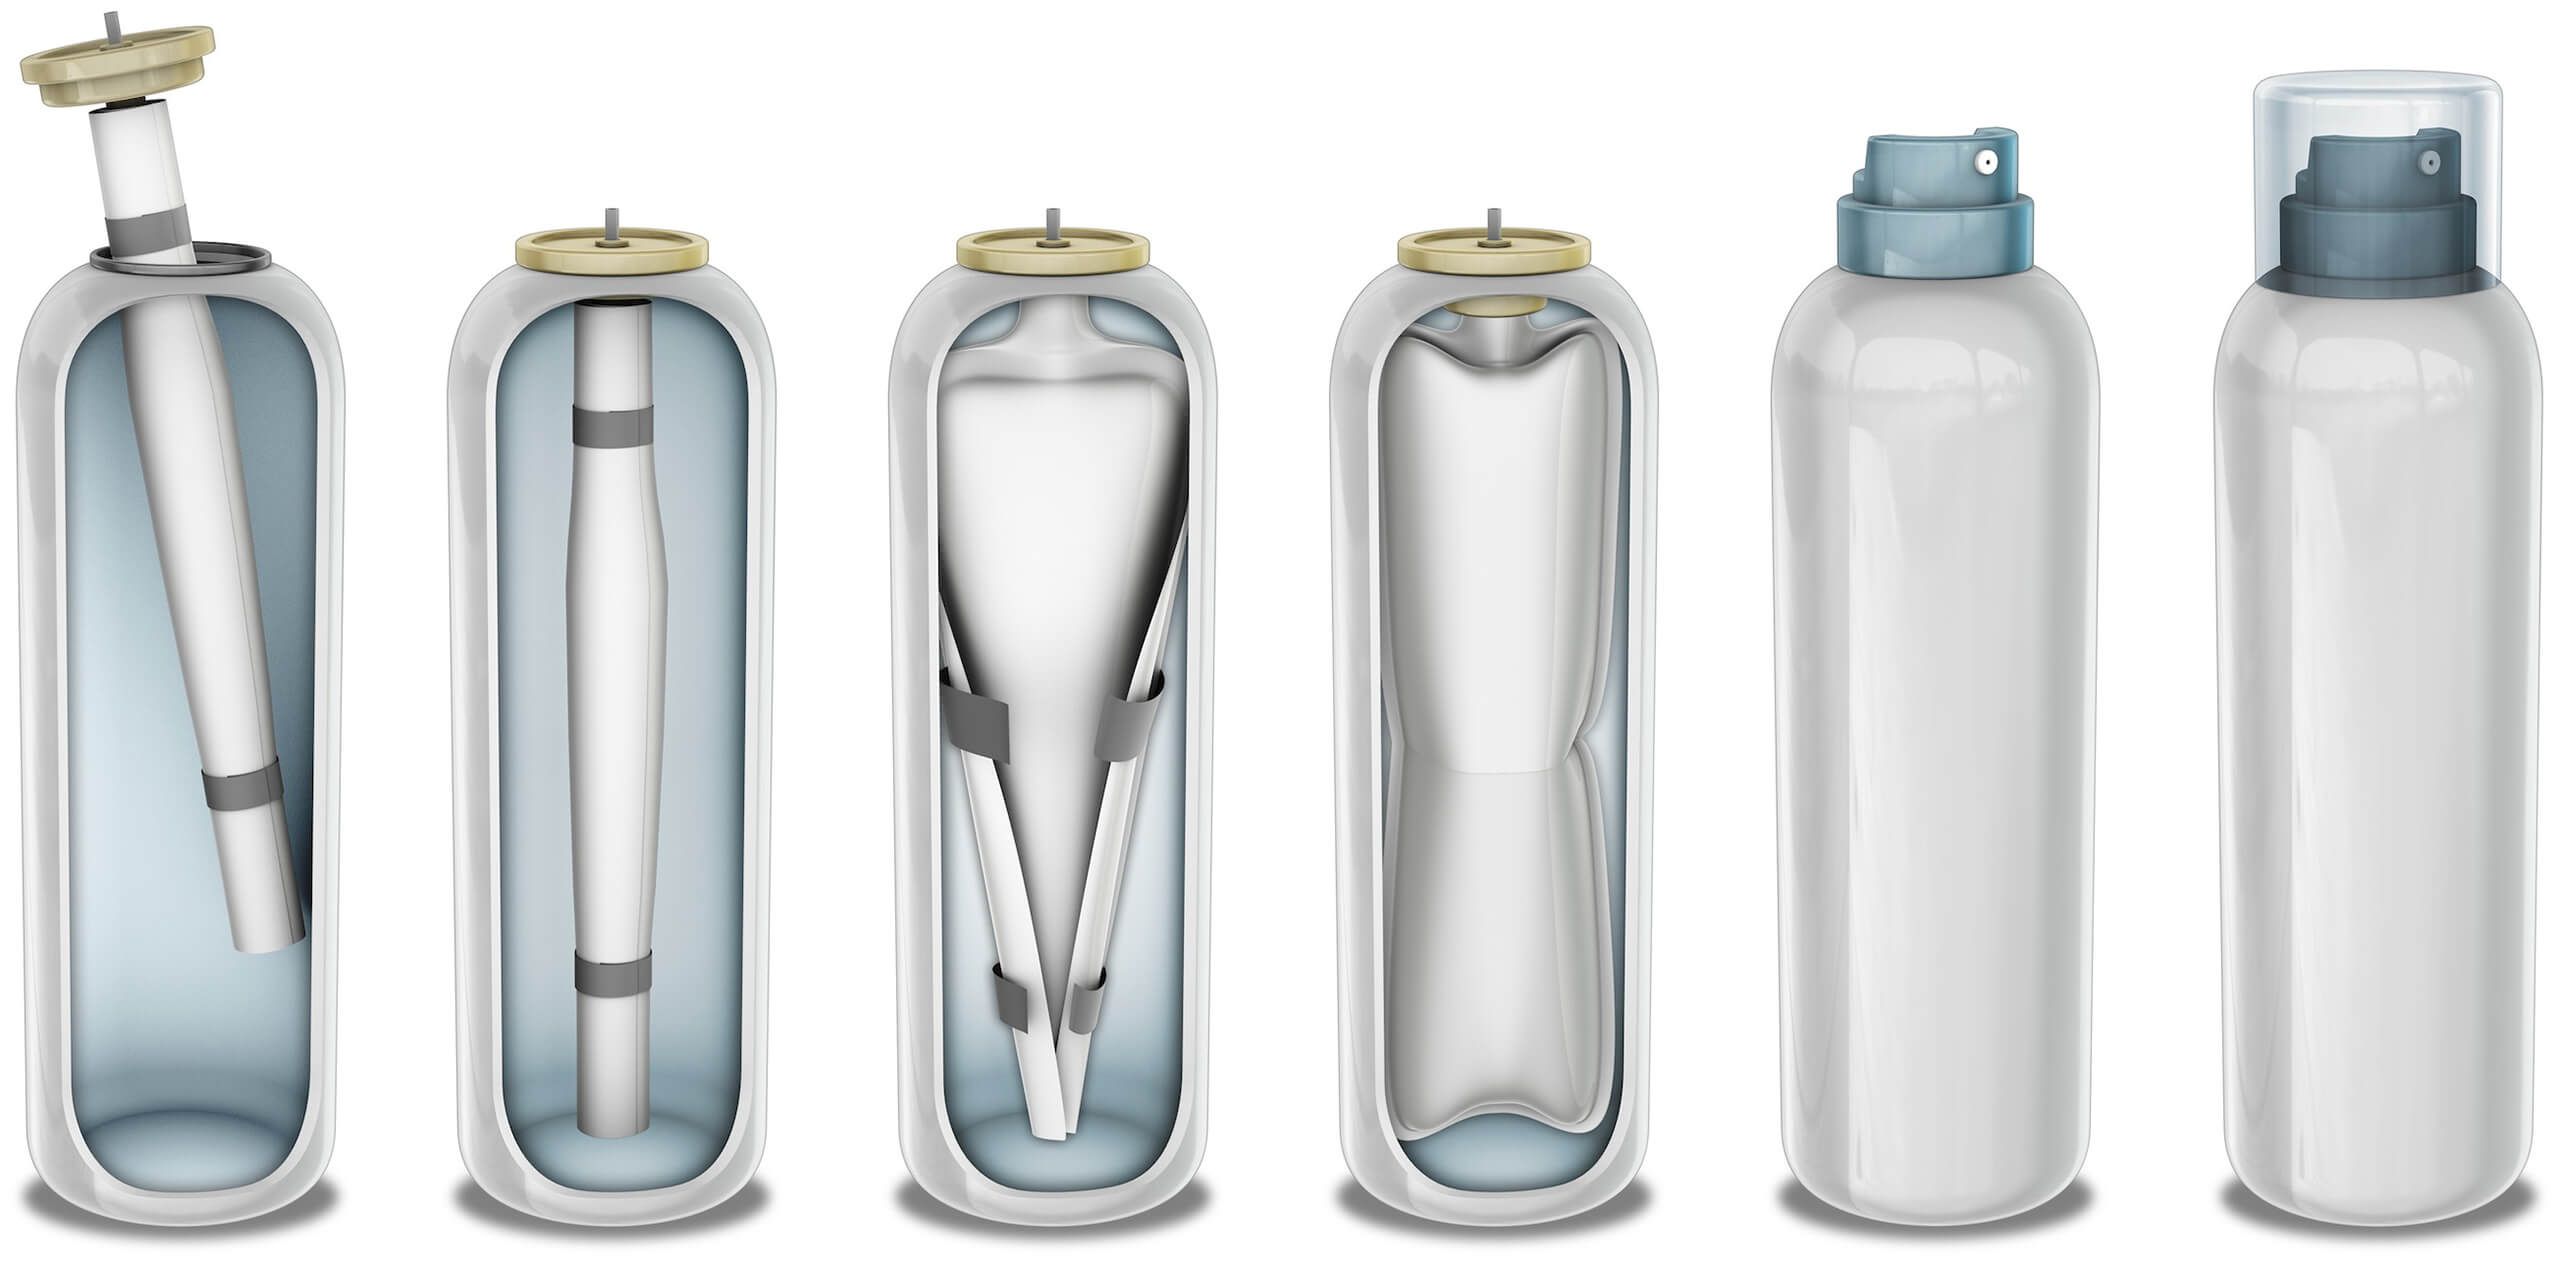 Stages of the Bag-on-Valve aerosol production process